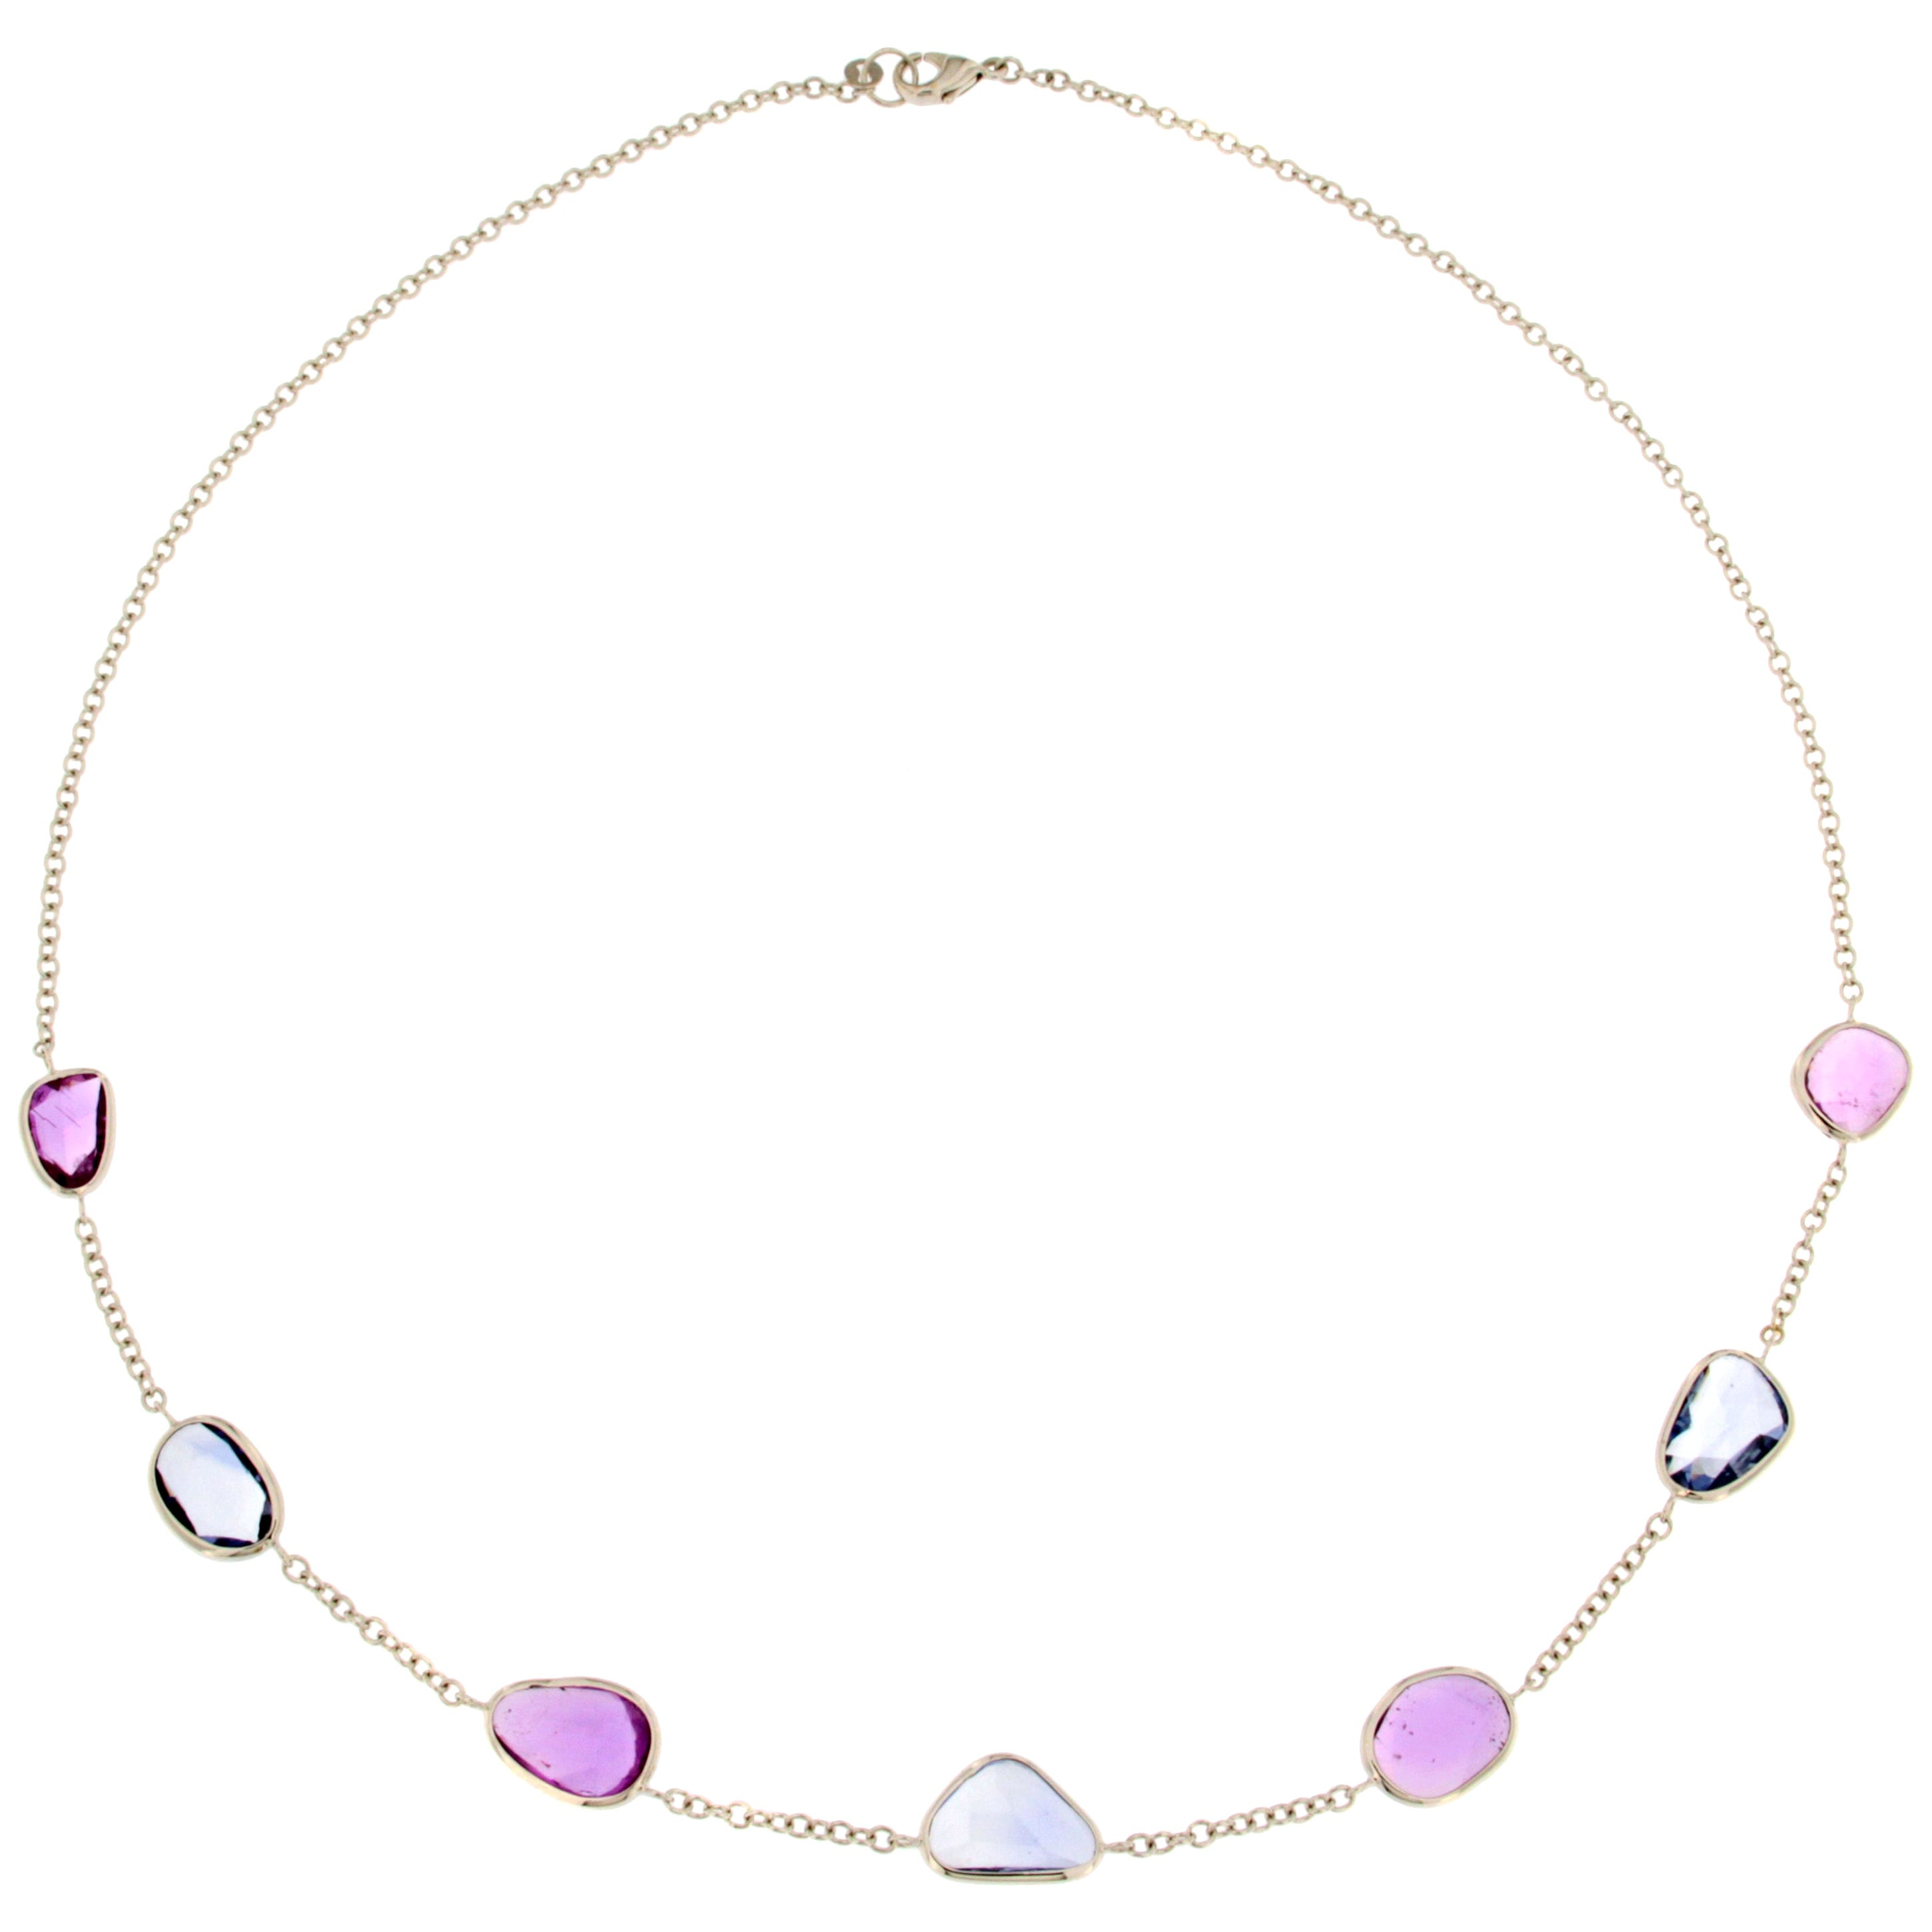 Blue and Pink Sapphire 18 Karat White Gold Necklace